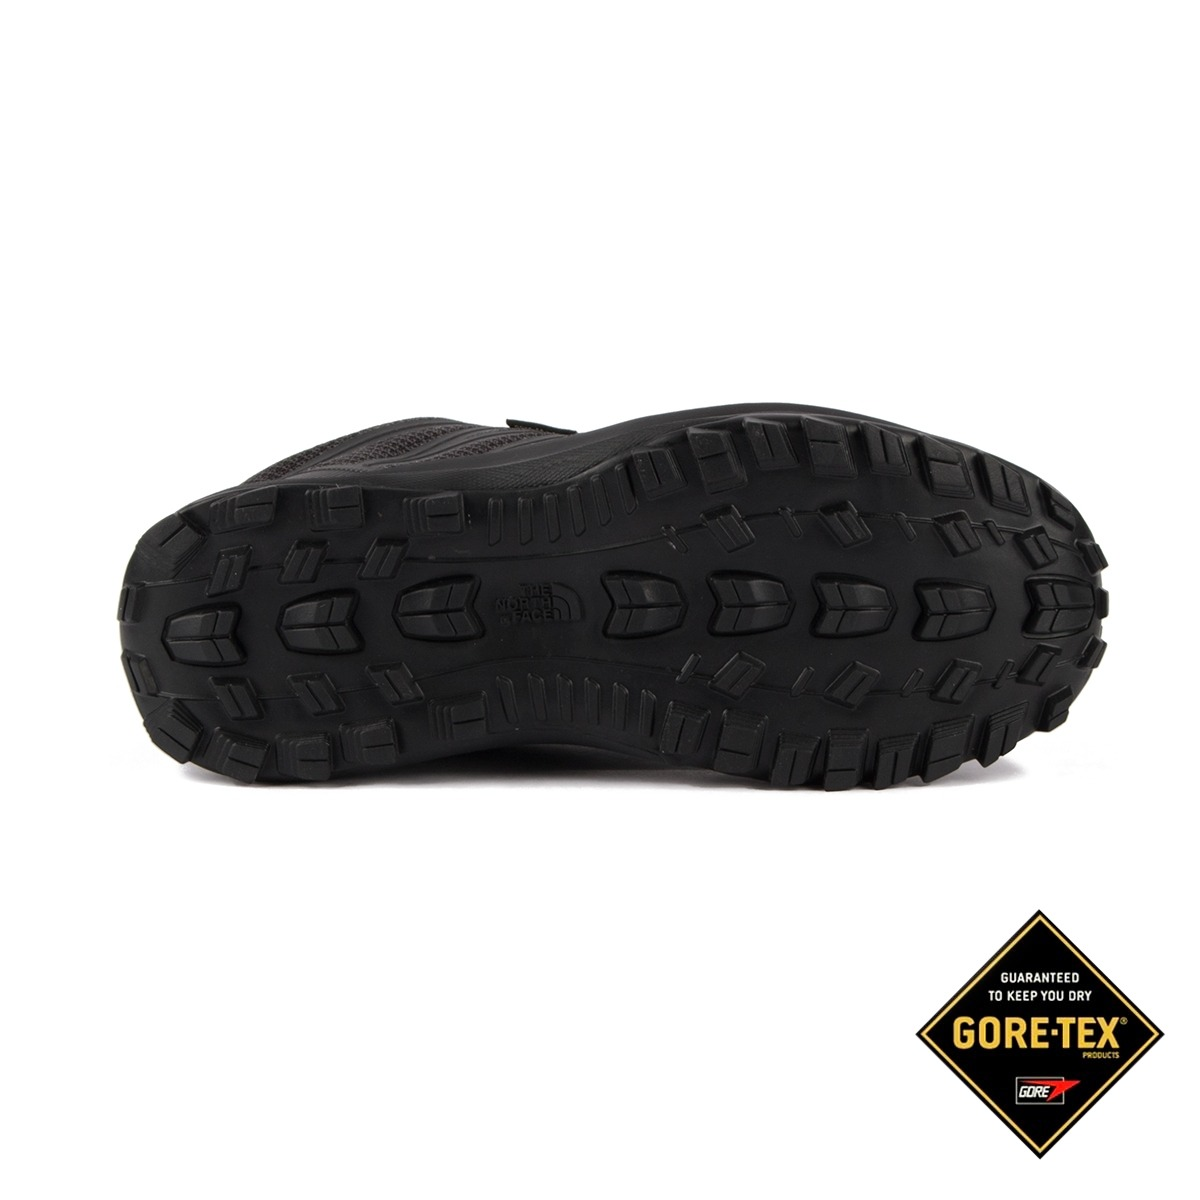 The North Face Litewave Fastpack GTX Black Negro Gore-tex Hombre